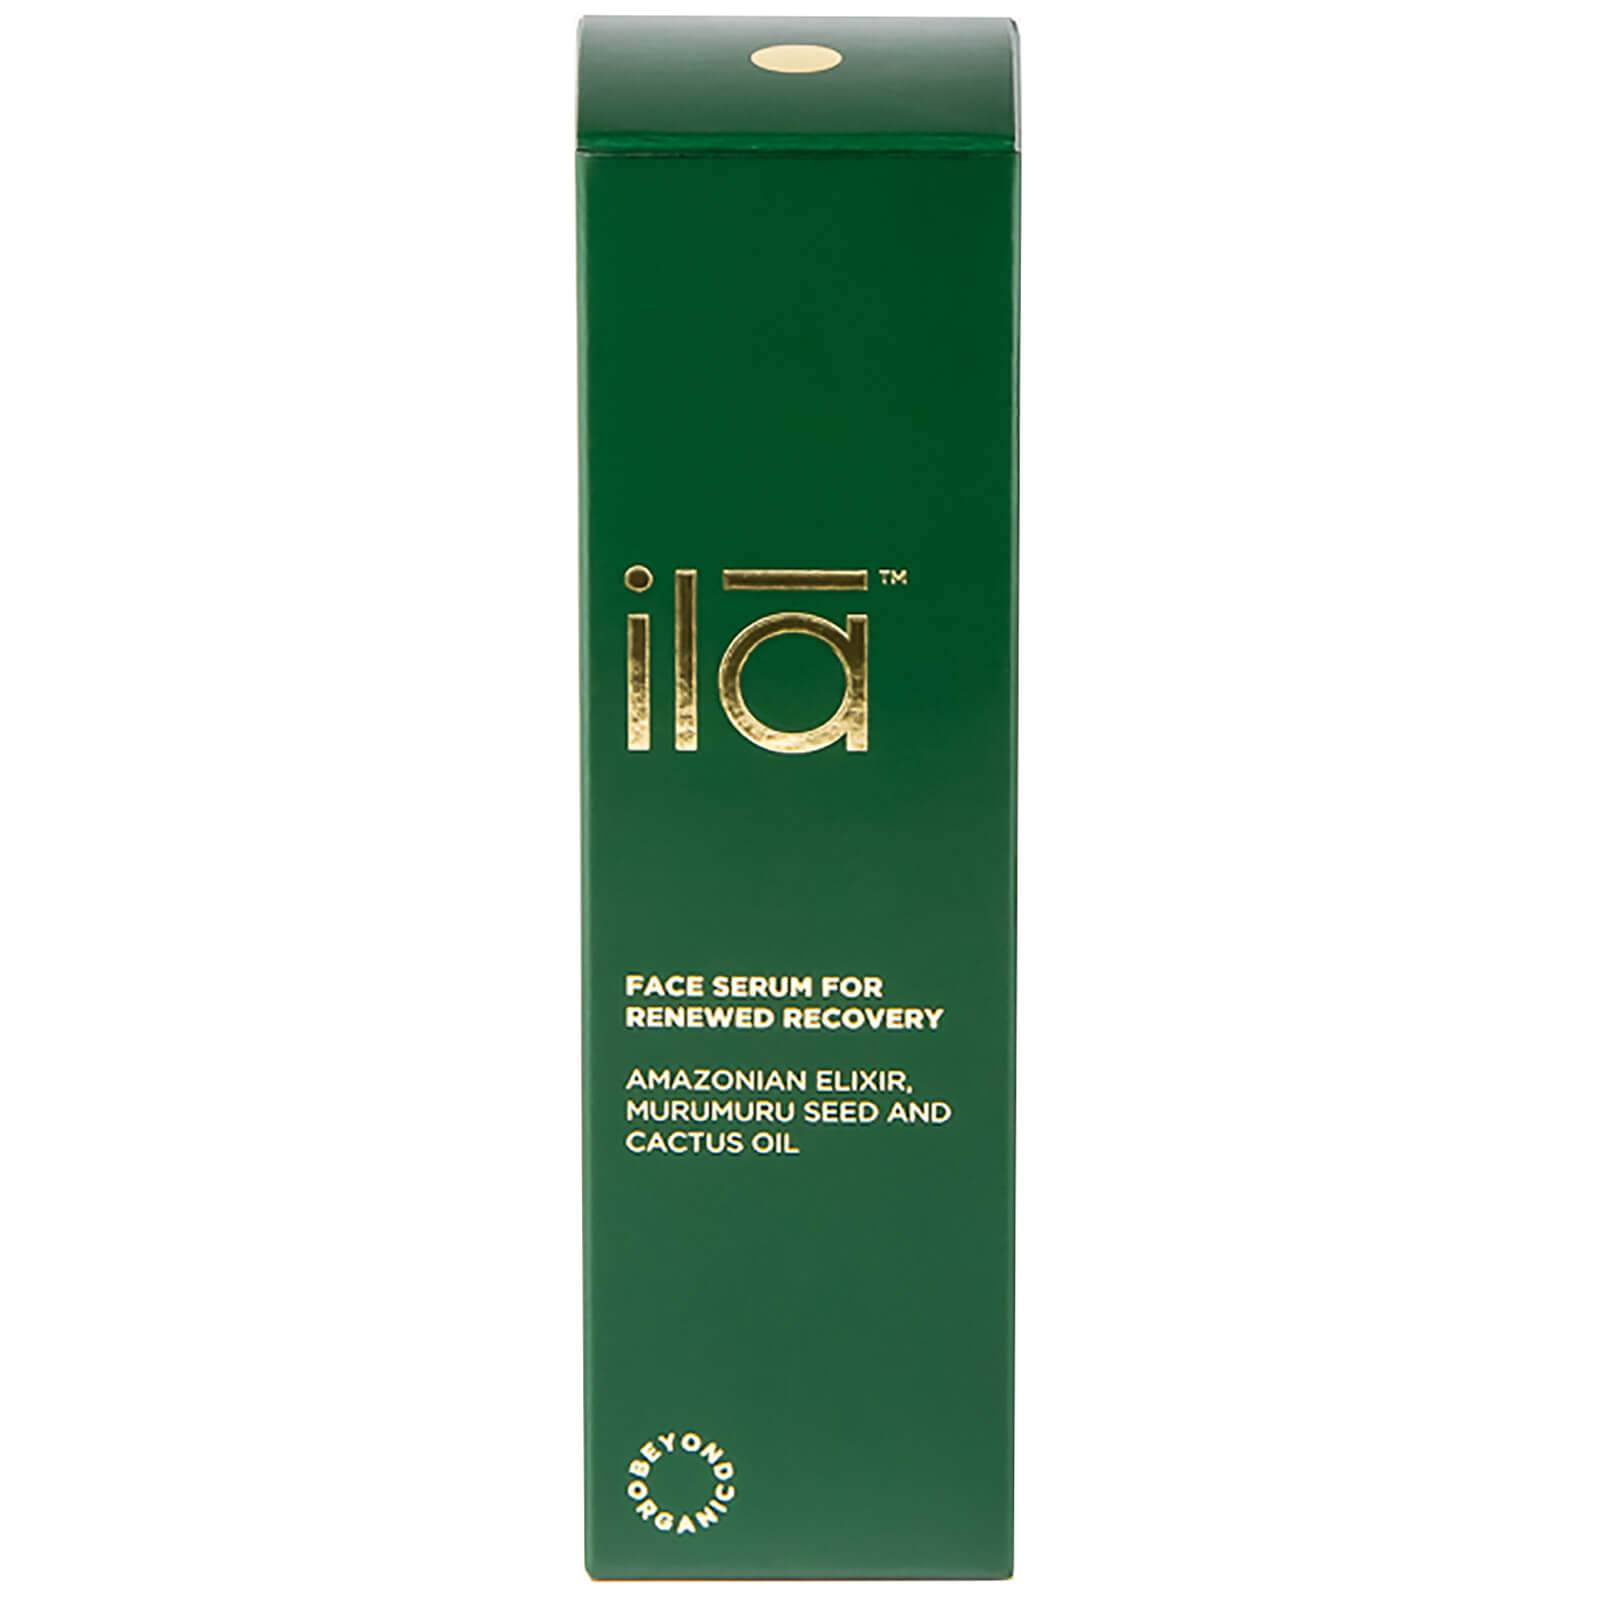 Ila-Spa Face Serum for Renewed Recovery 30ml